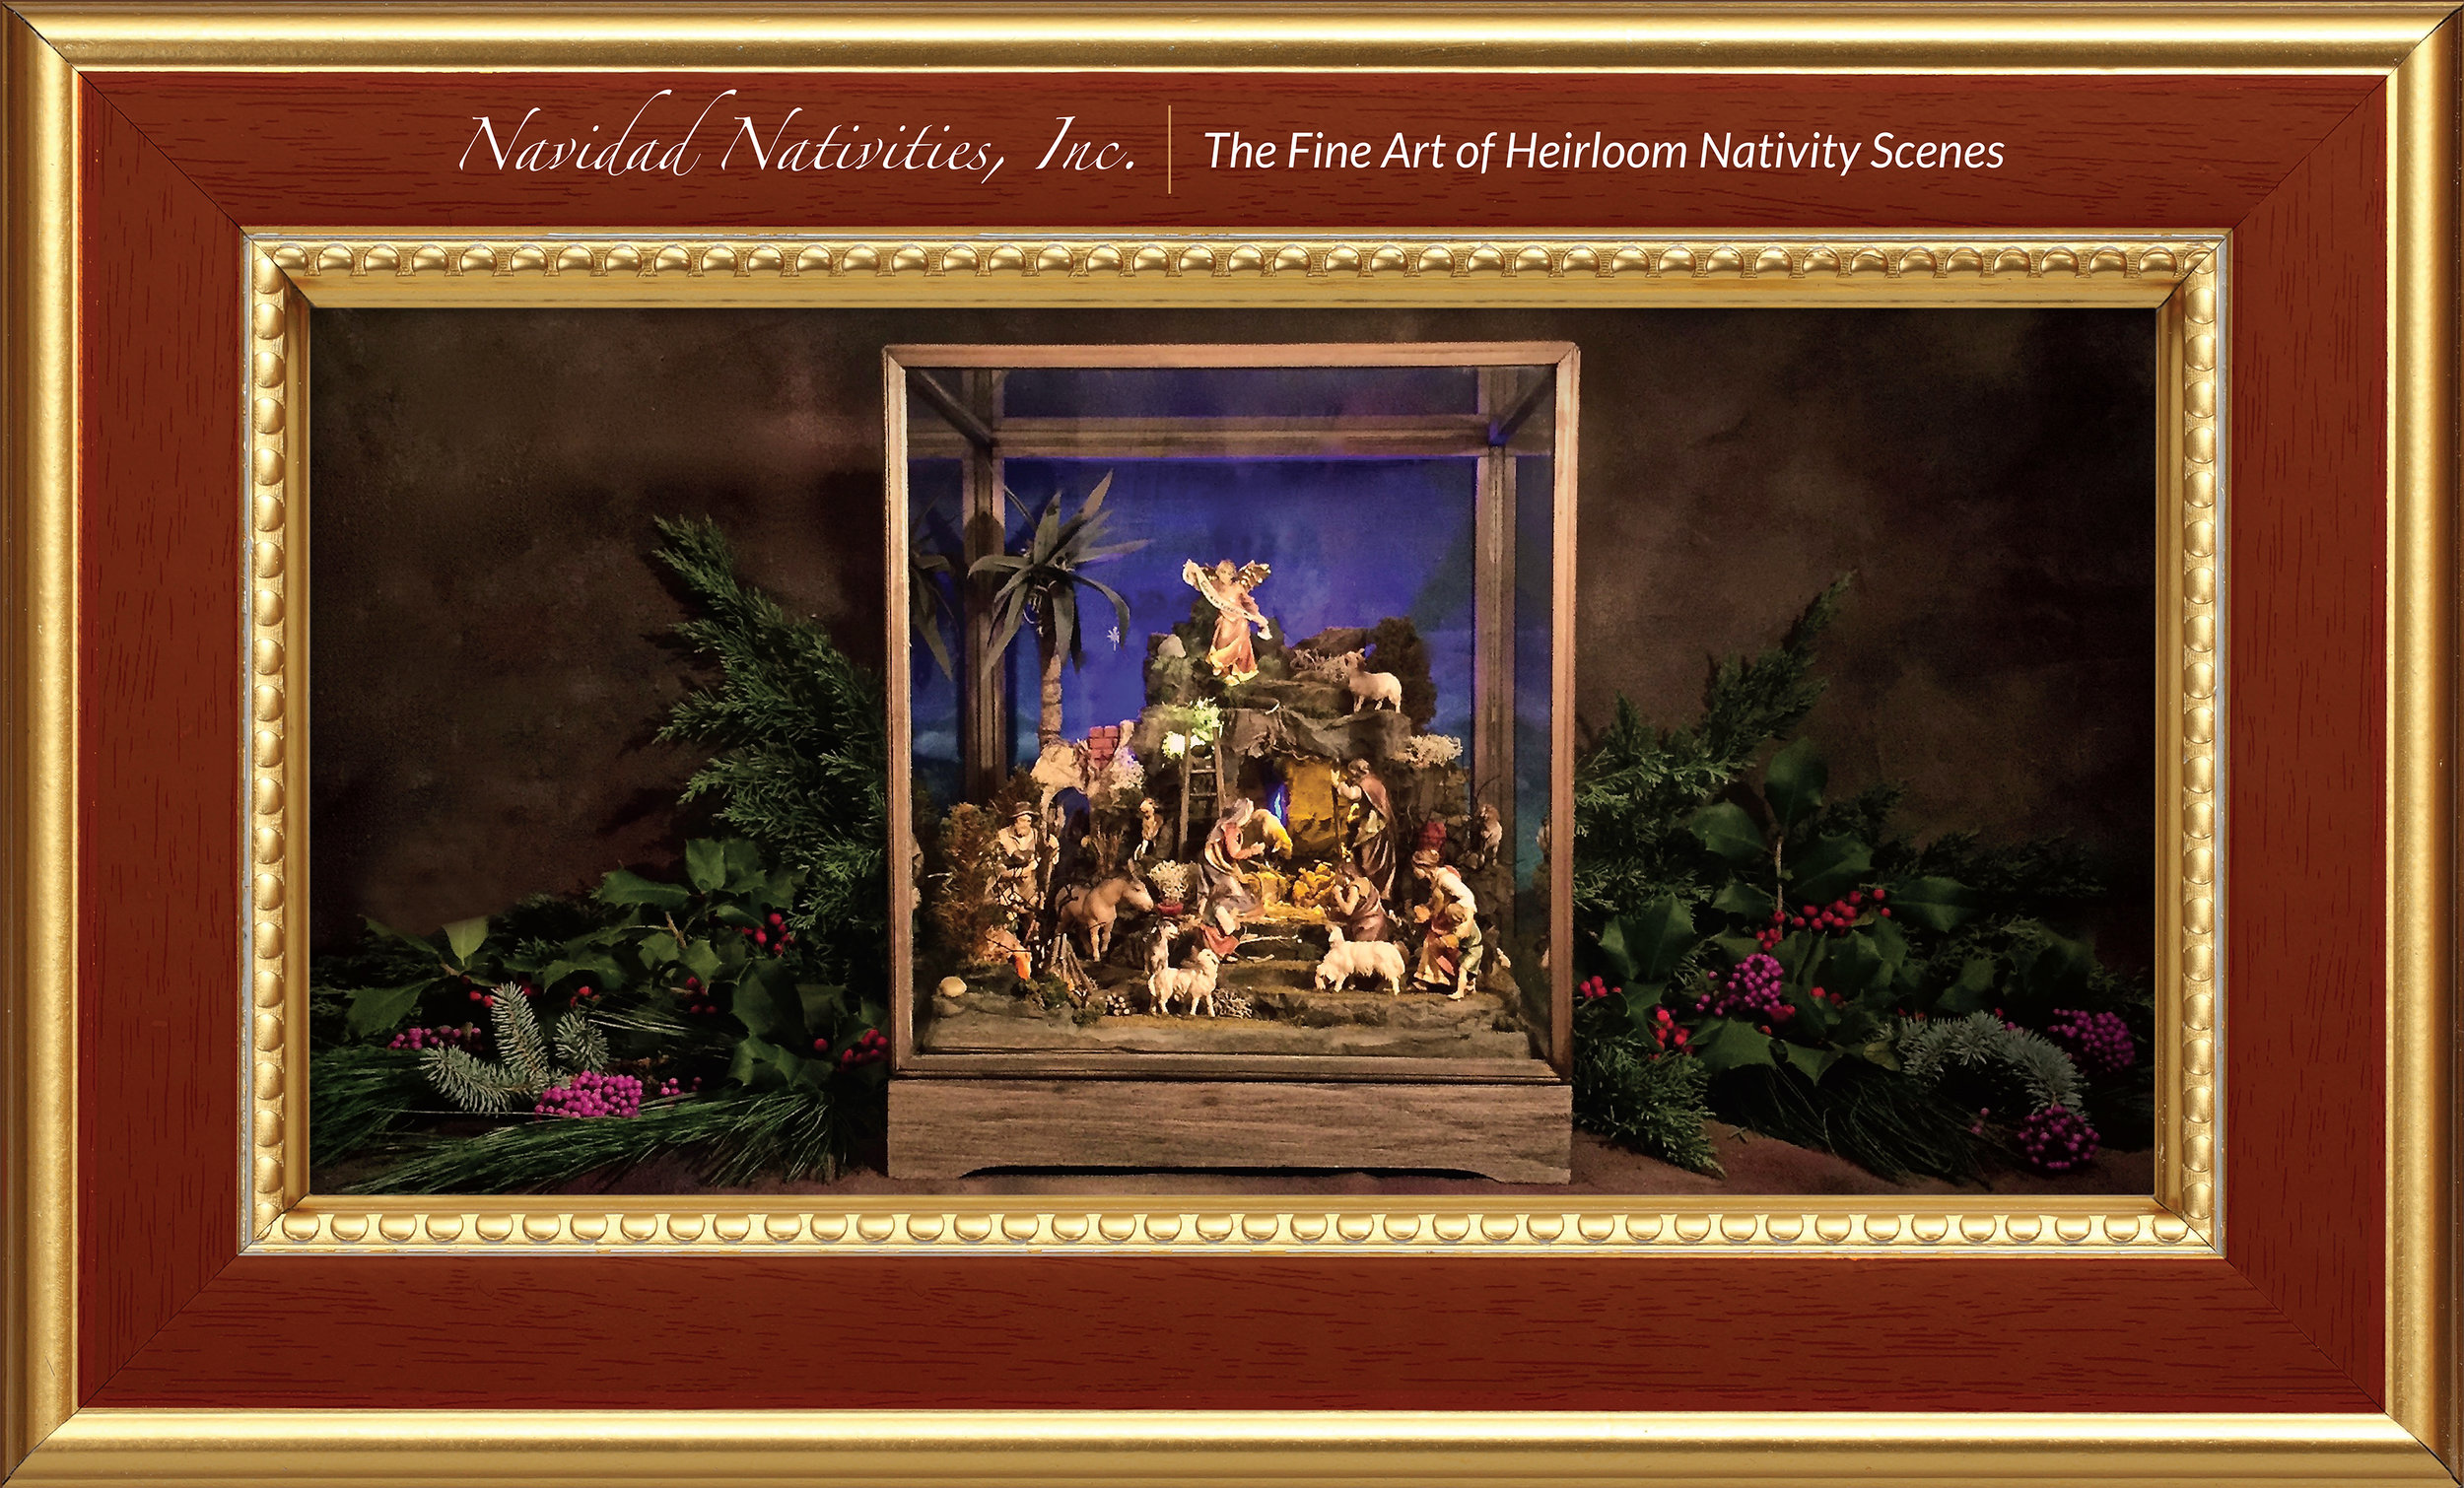 Promotional lobby poster.Navidad Nativities was invited to be a participant/exhibitor at the U.S. Conference of Bishops (cardinals, archbishops and bishops) in Baltimore in November of 2016. Sincere thanks to the St. Jude Liturgical Arts Studio.